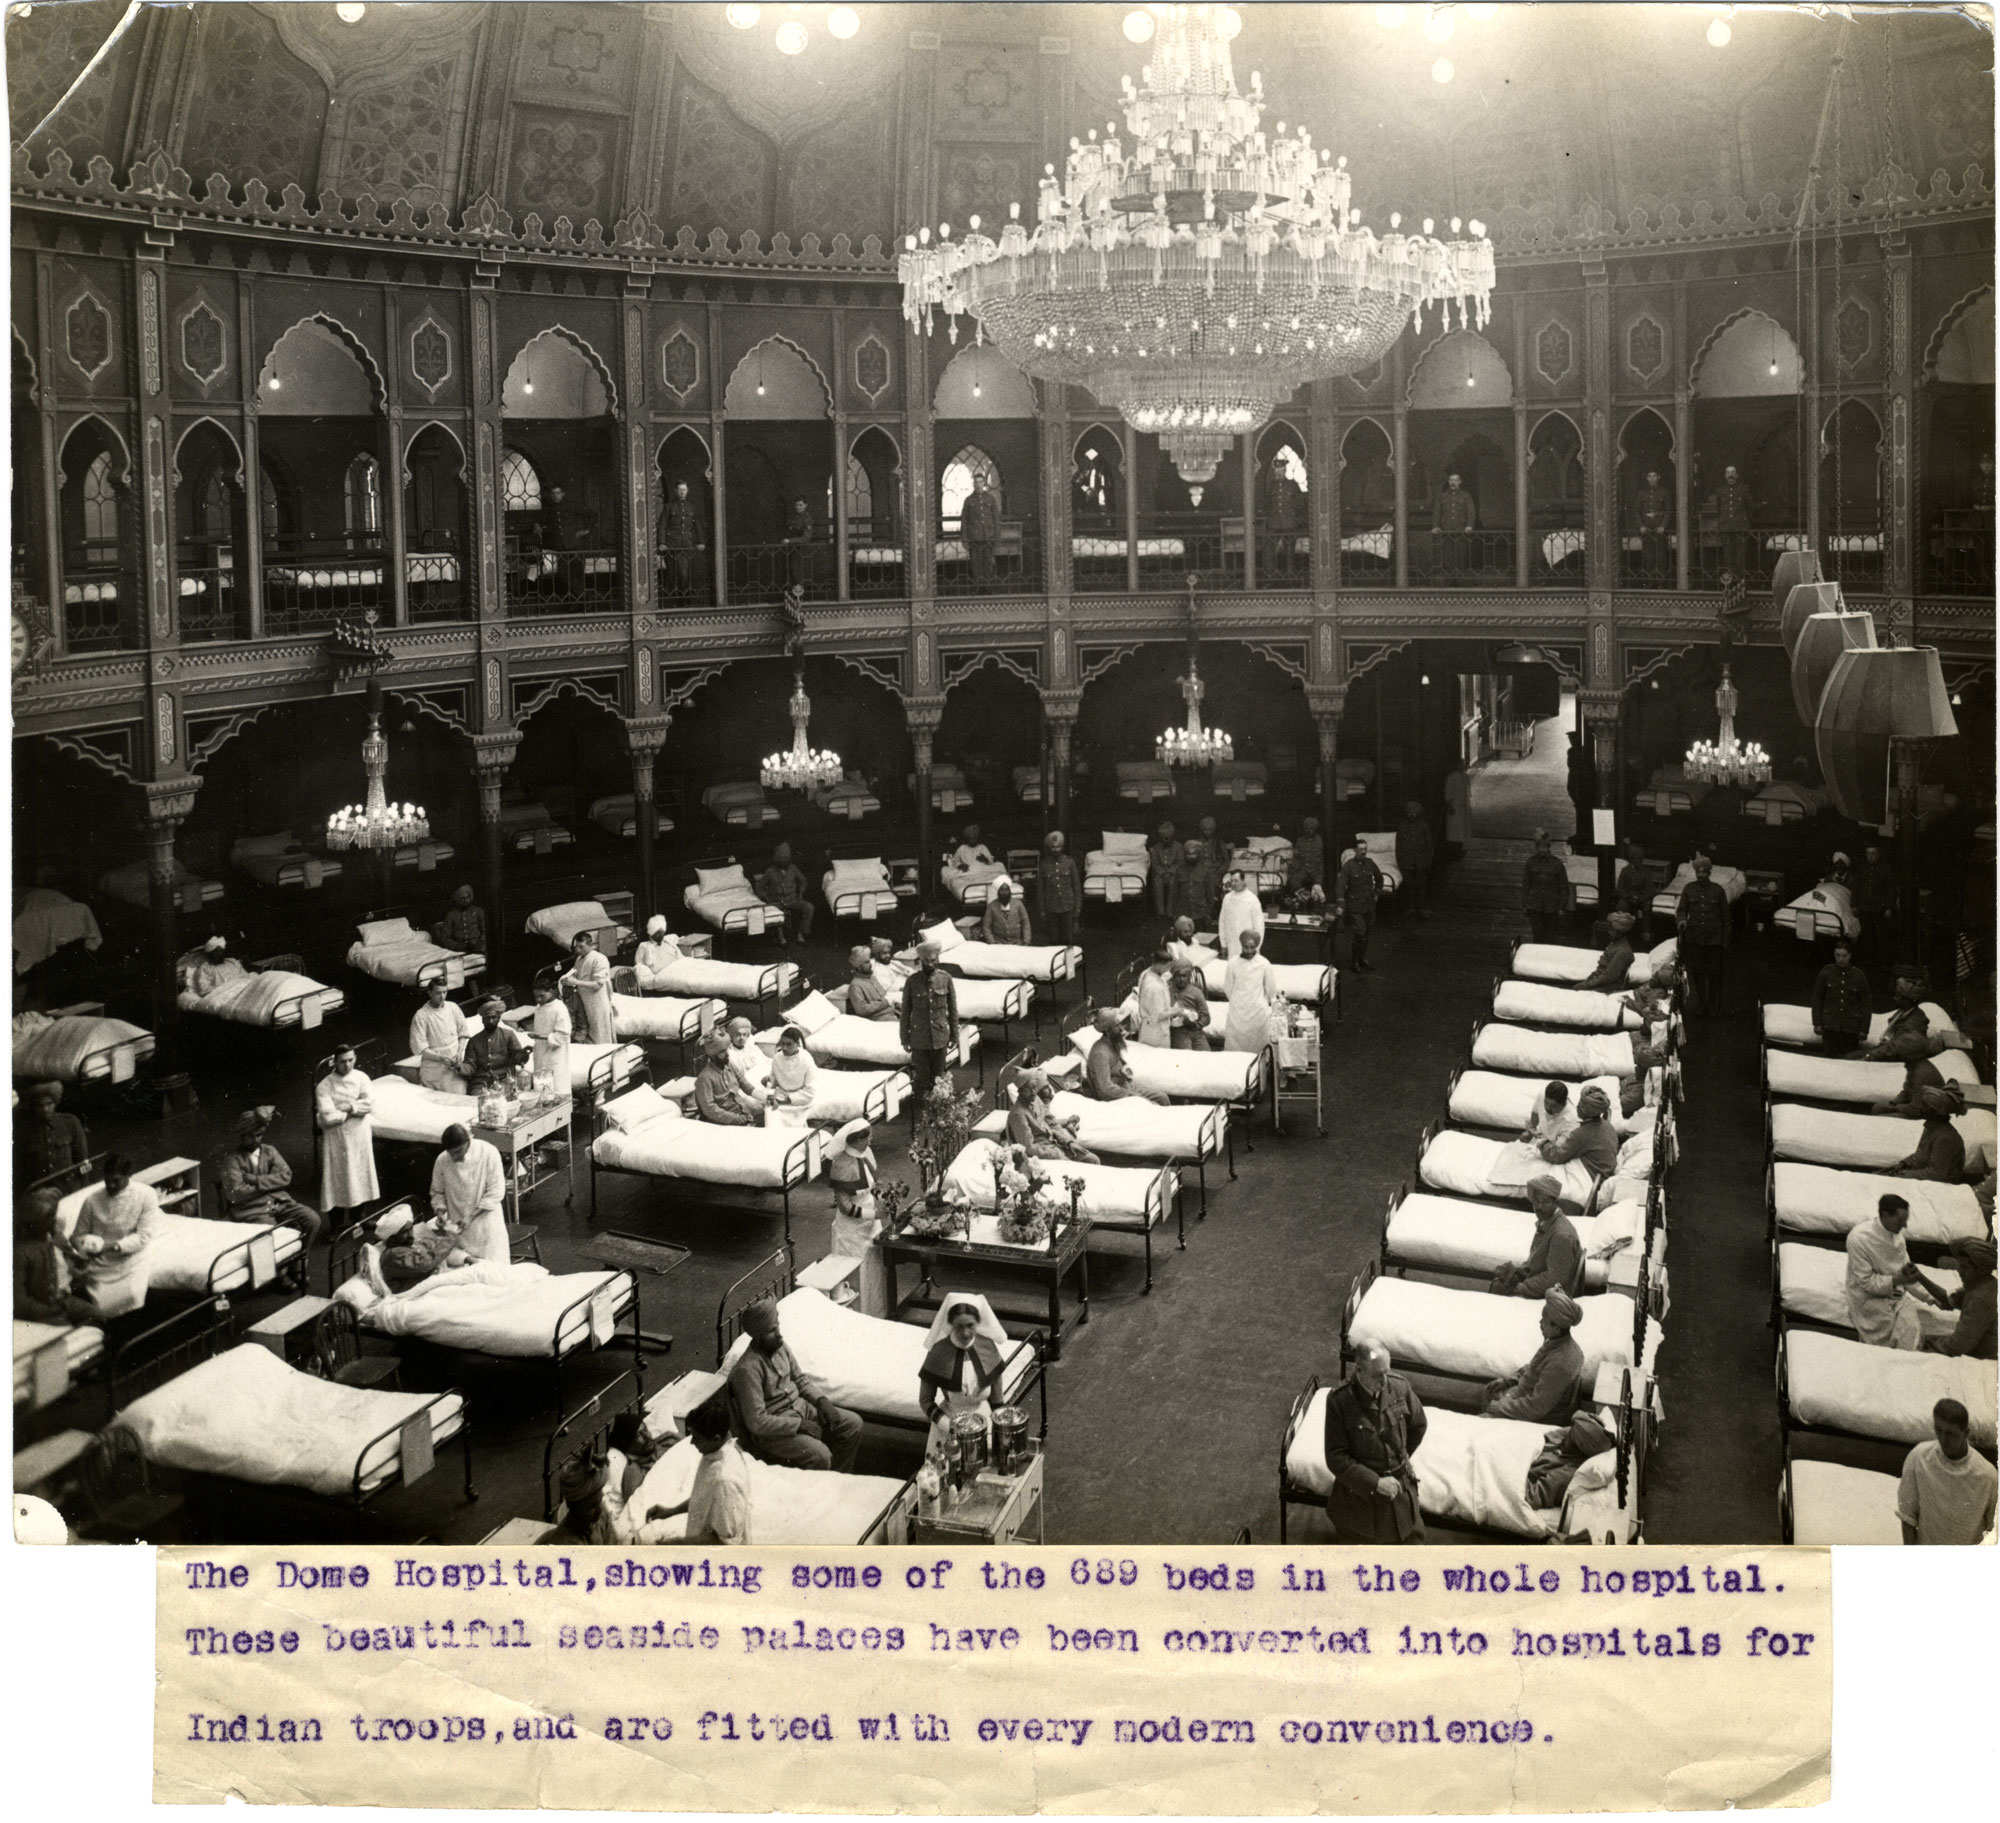 Photo of the Dome Hospital in Brighton